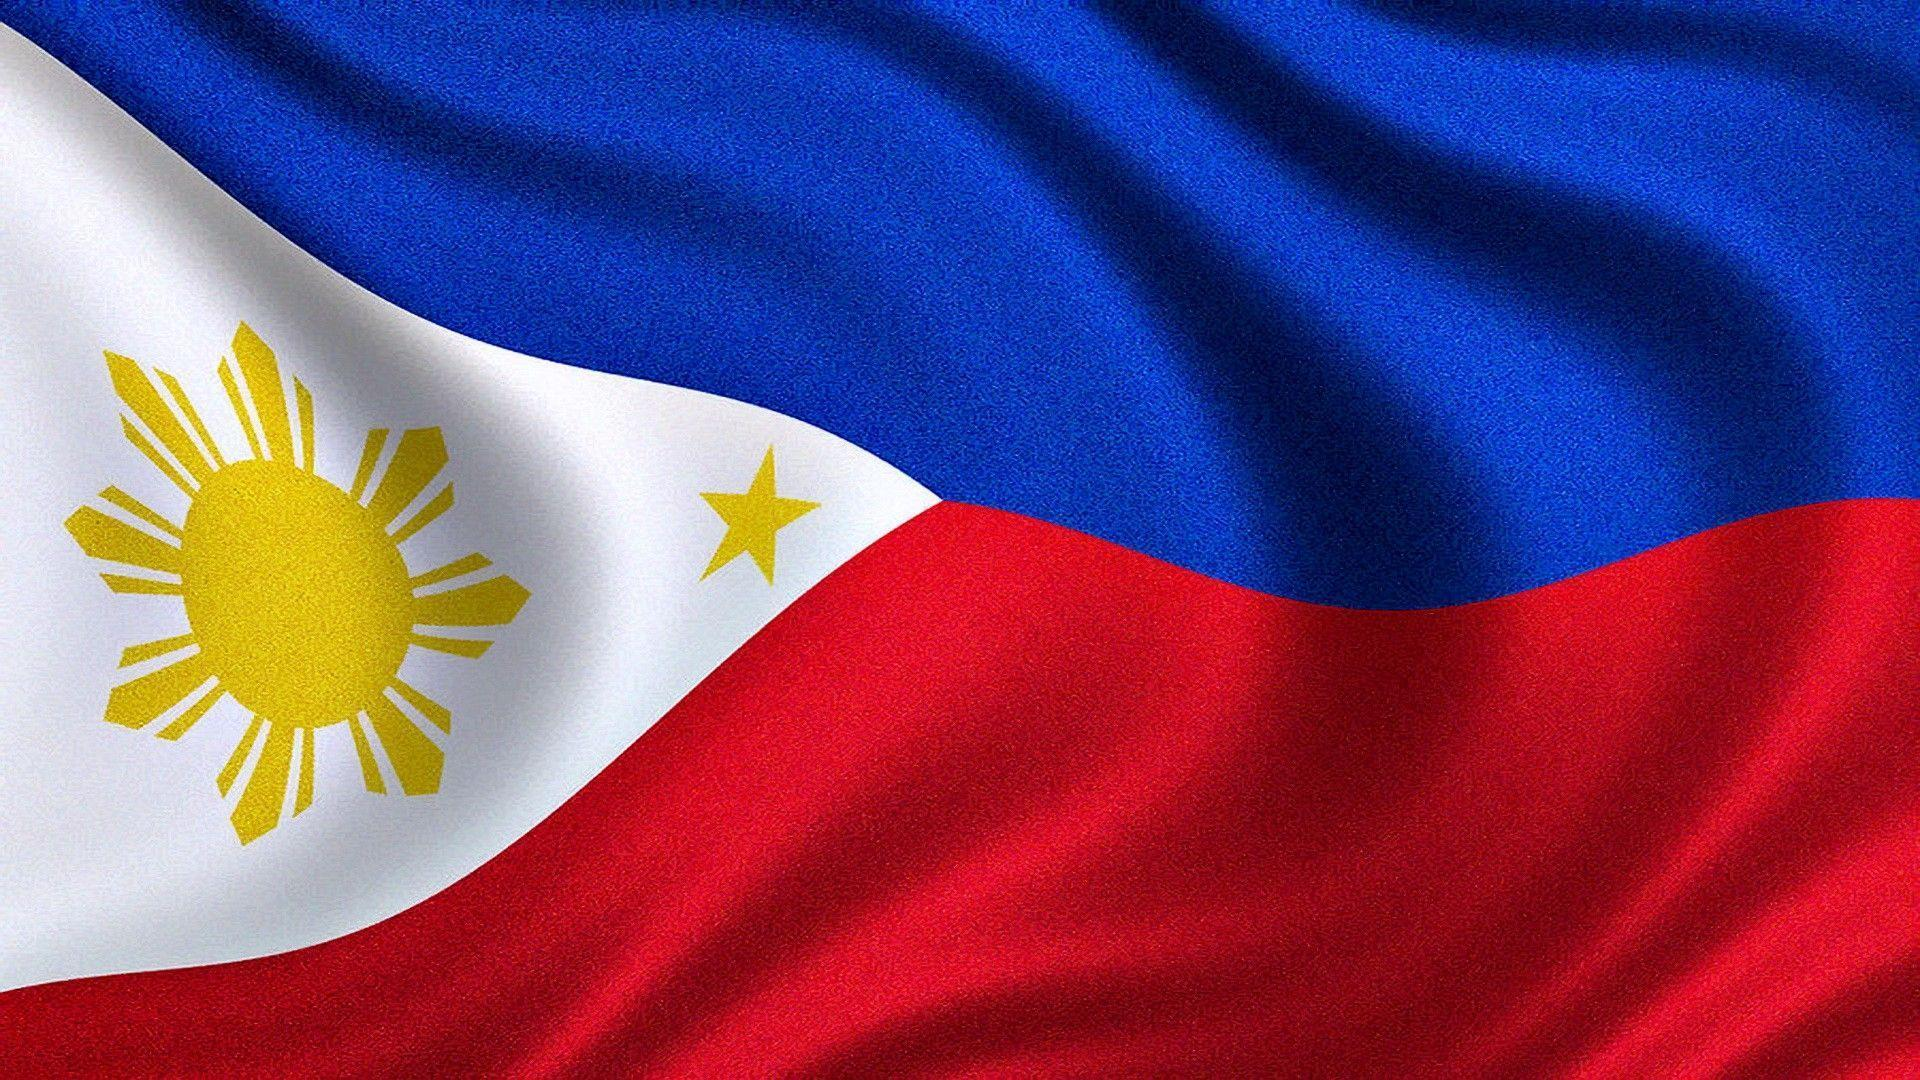 Flag of the Philippines wallpaper | Flags wallpaper | Pinterest .